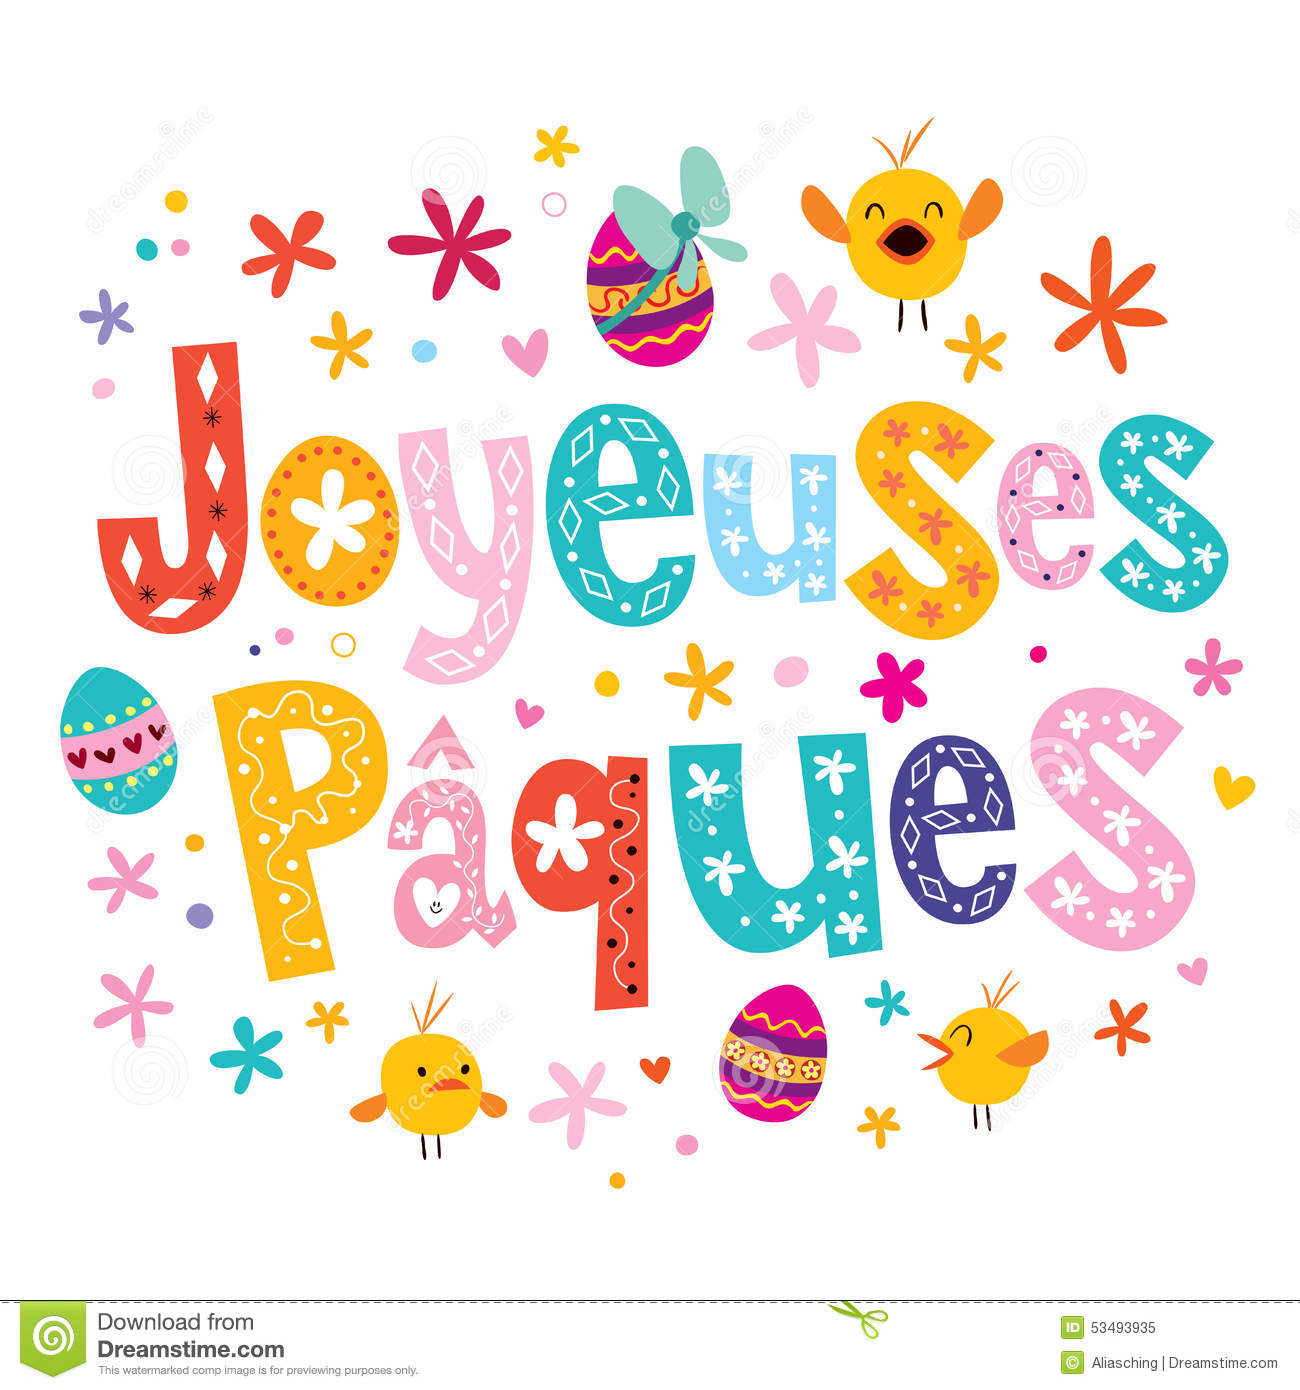 Joyeuses paques happy easter in french greeting card stock vector download comp m4hsunfo